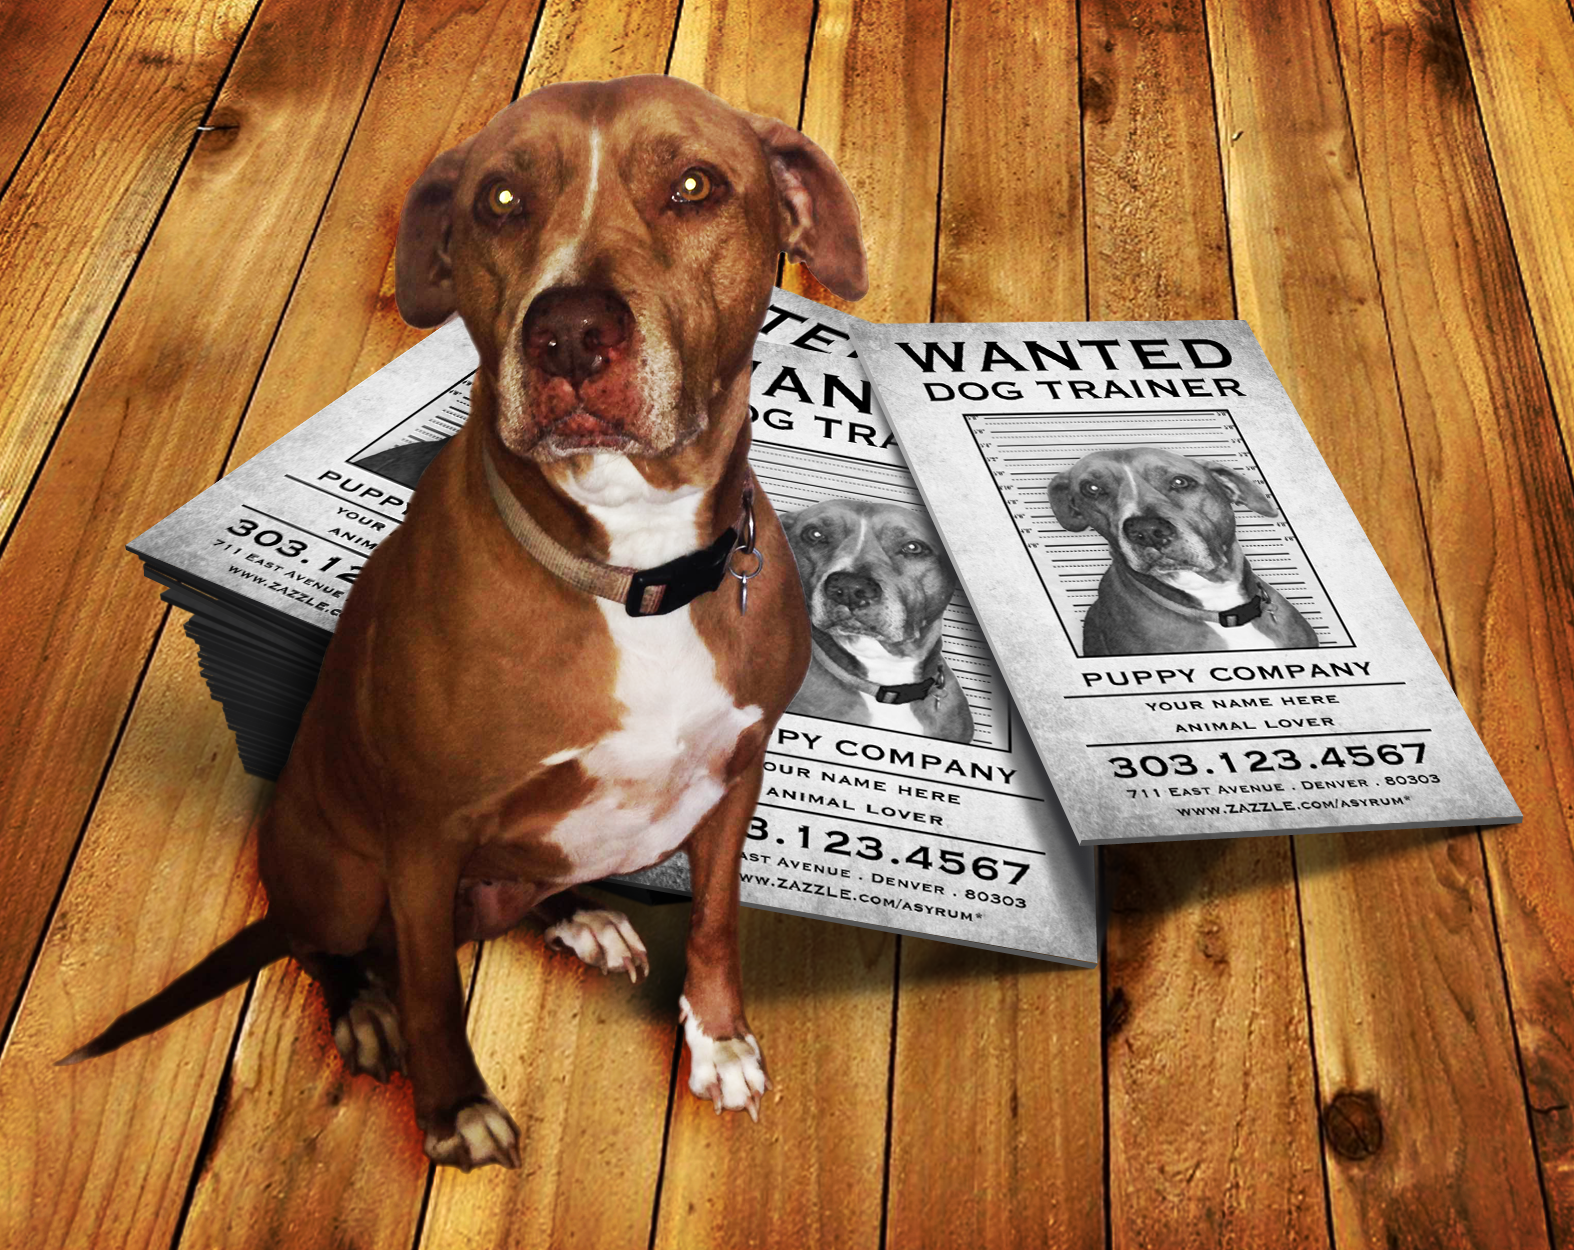 dog training wanted poster stamp card